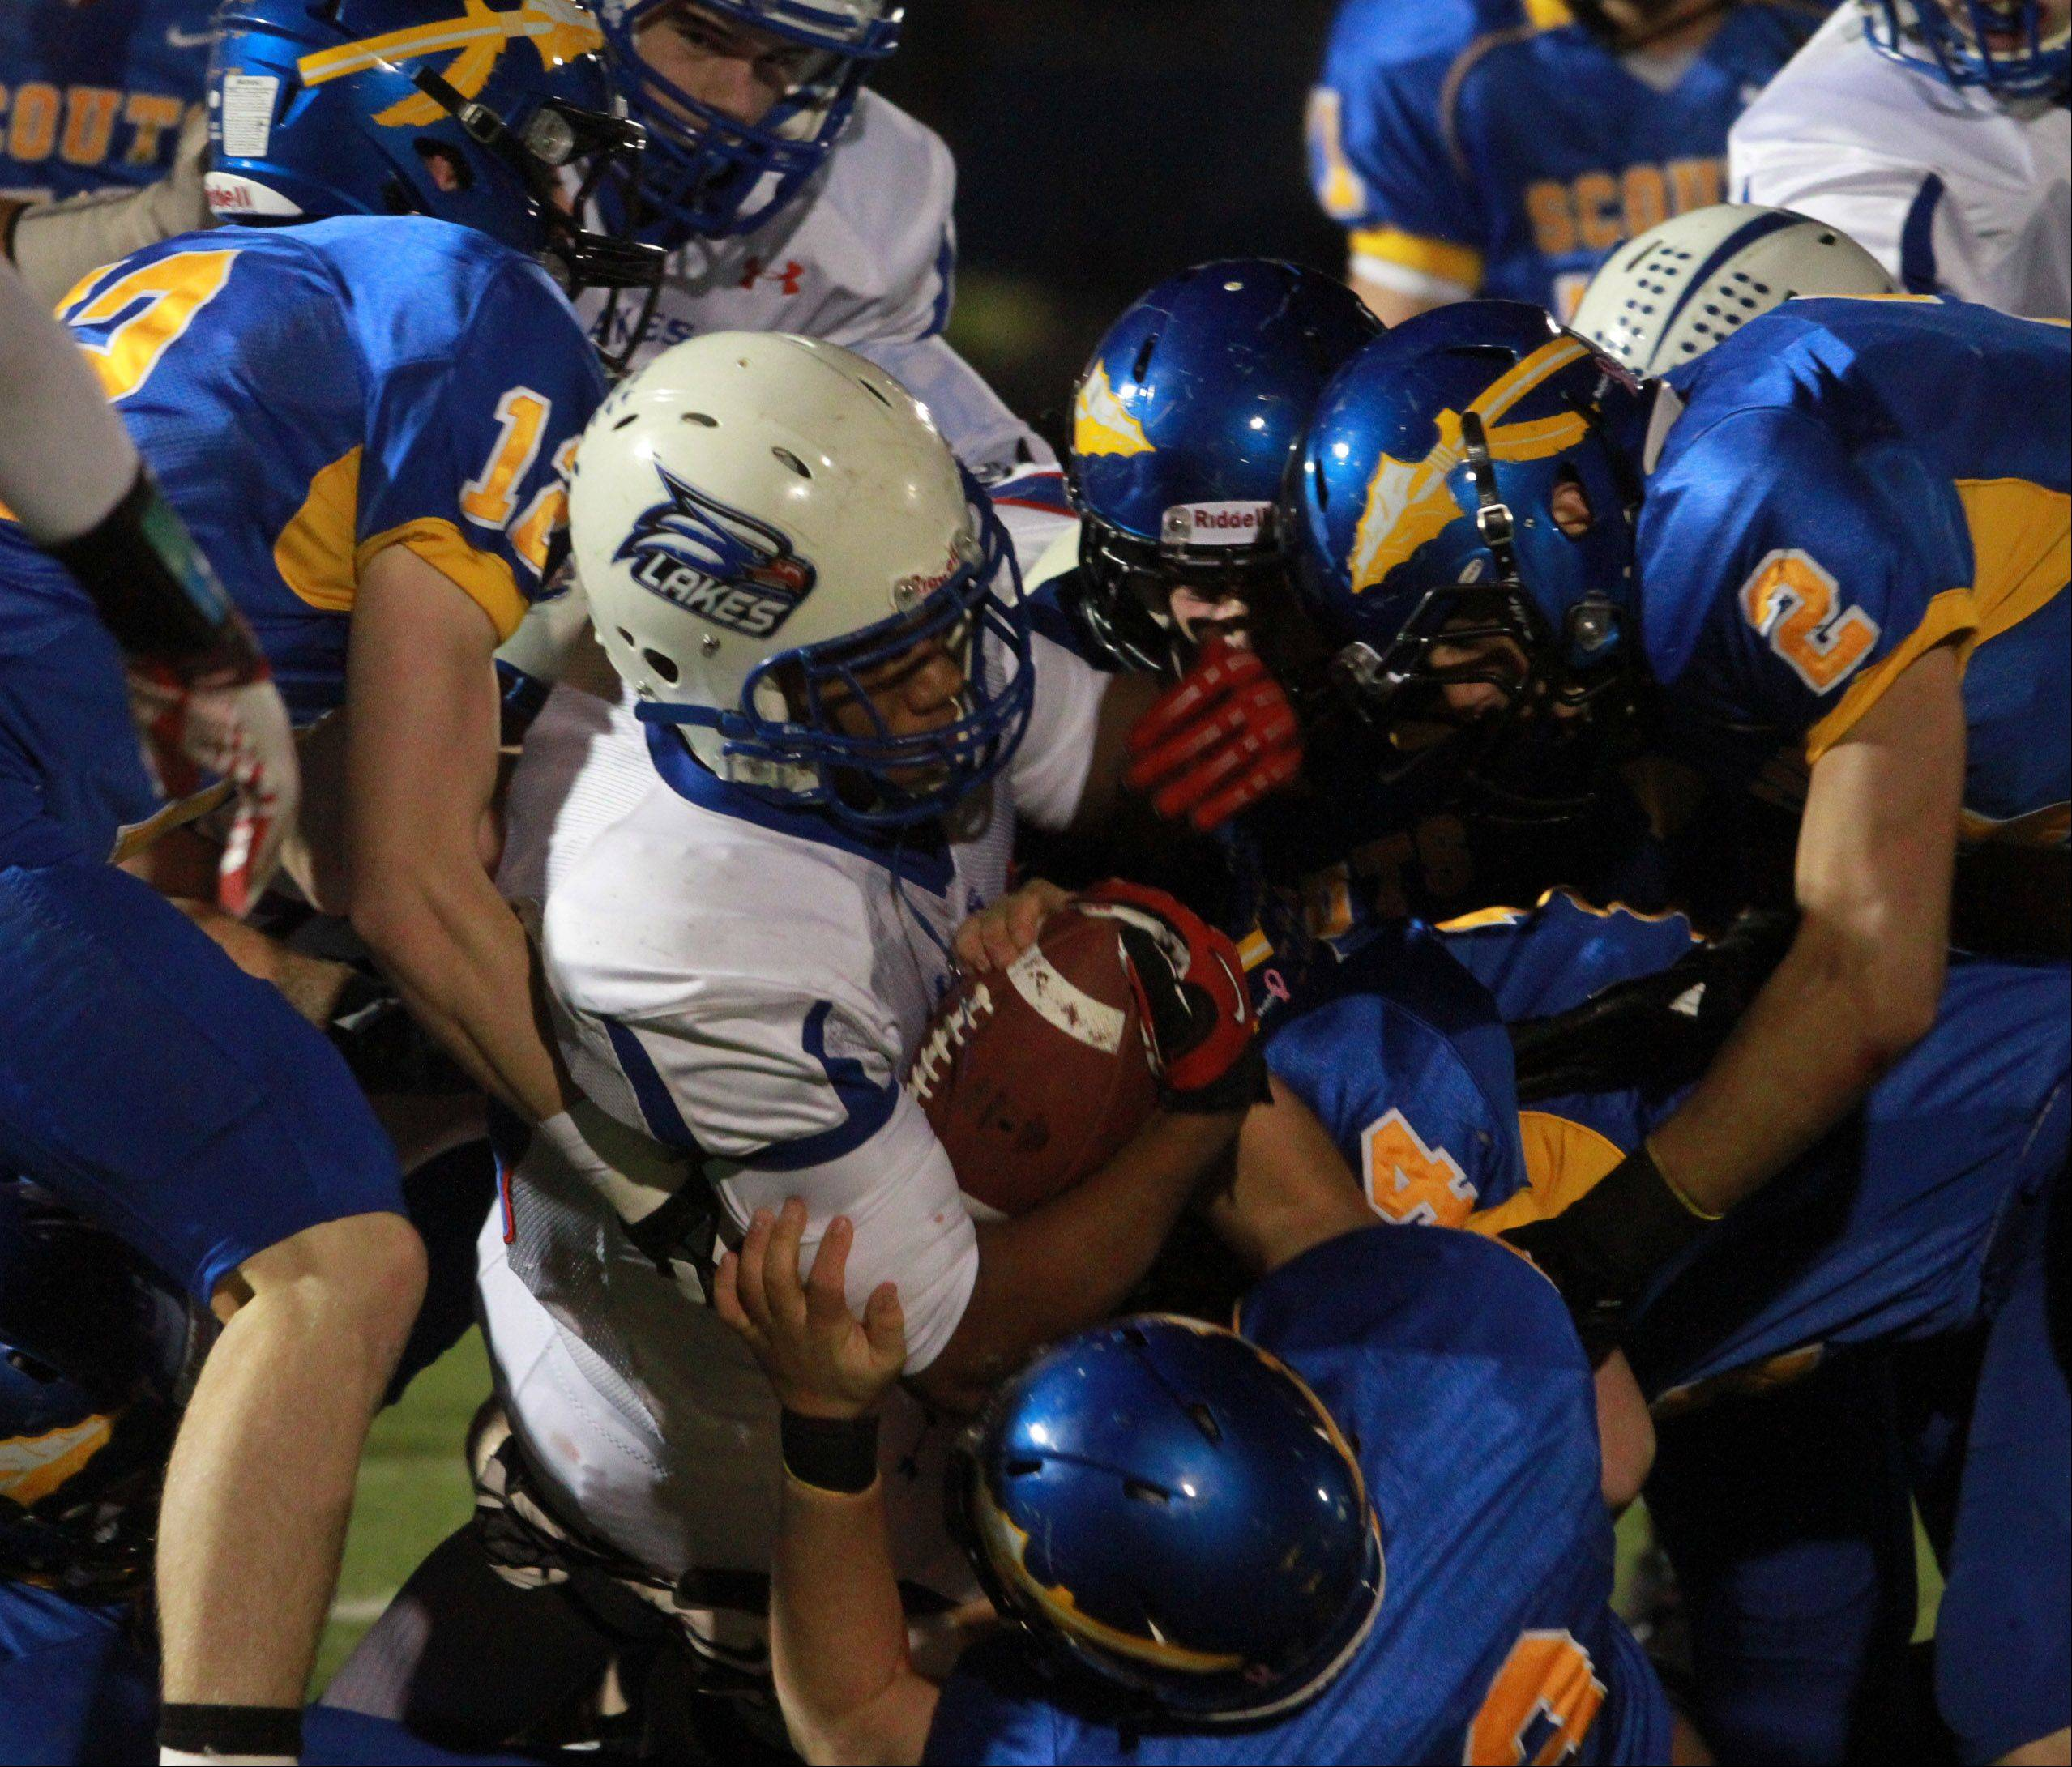 Lakes running-back Direll Clark is pulled down by a host of Lake Forest defenders.